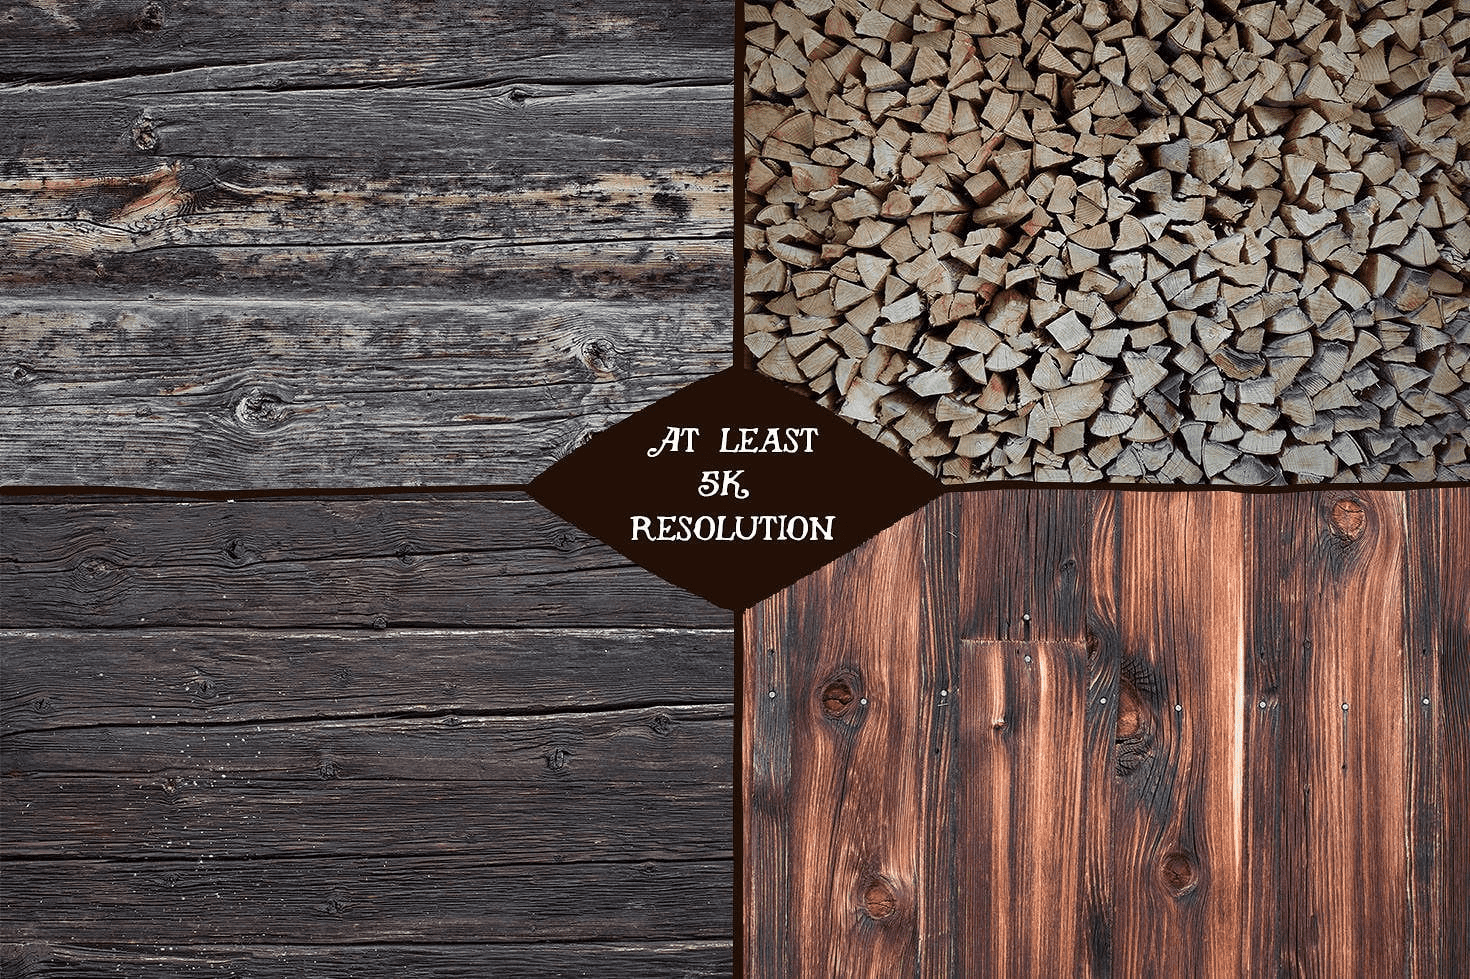 200+ Best Wood Texture Images in 2020: Free and Premium Wood Background Pictures - image4